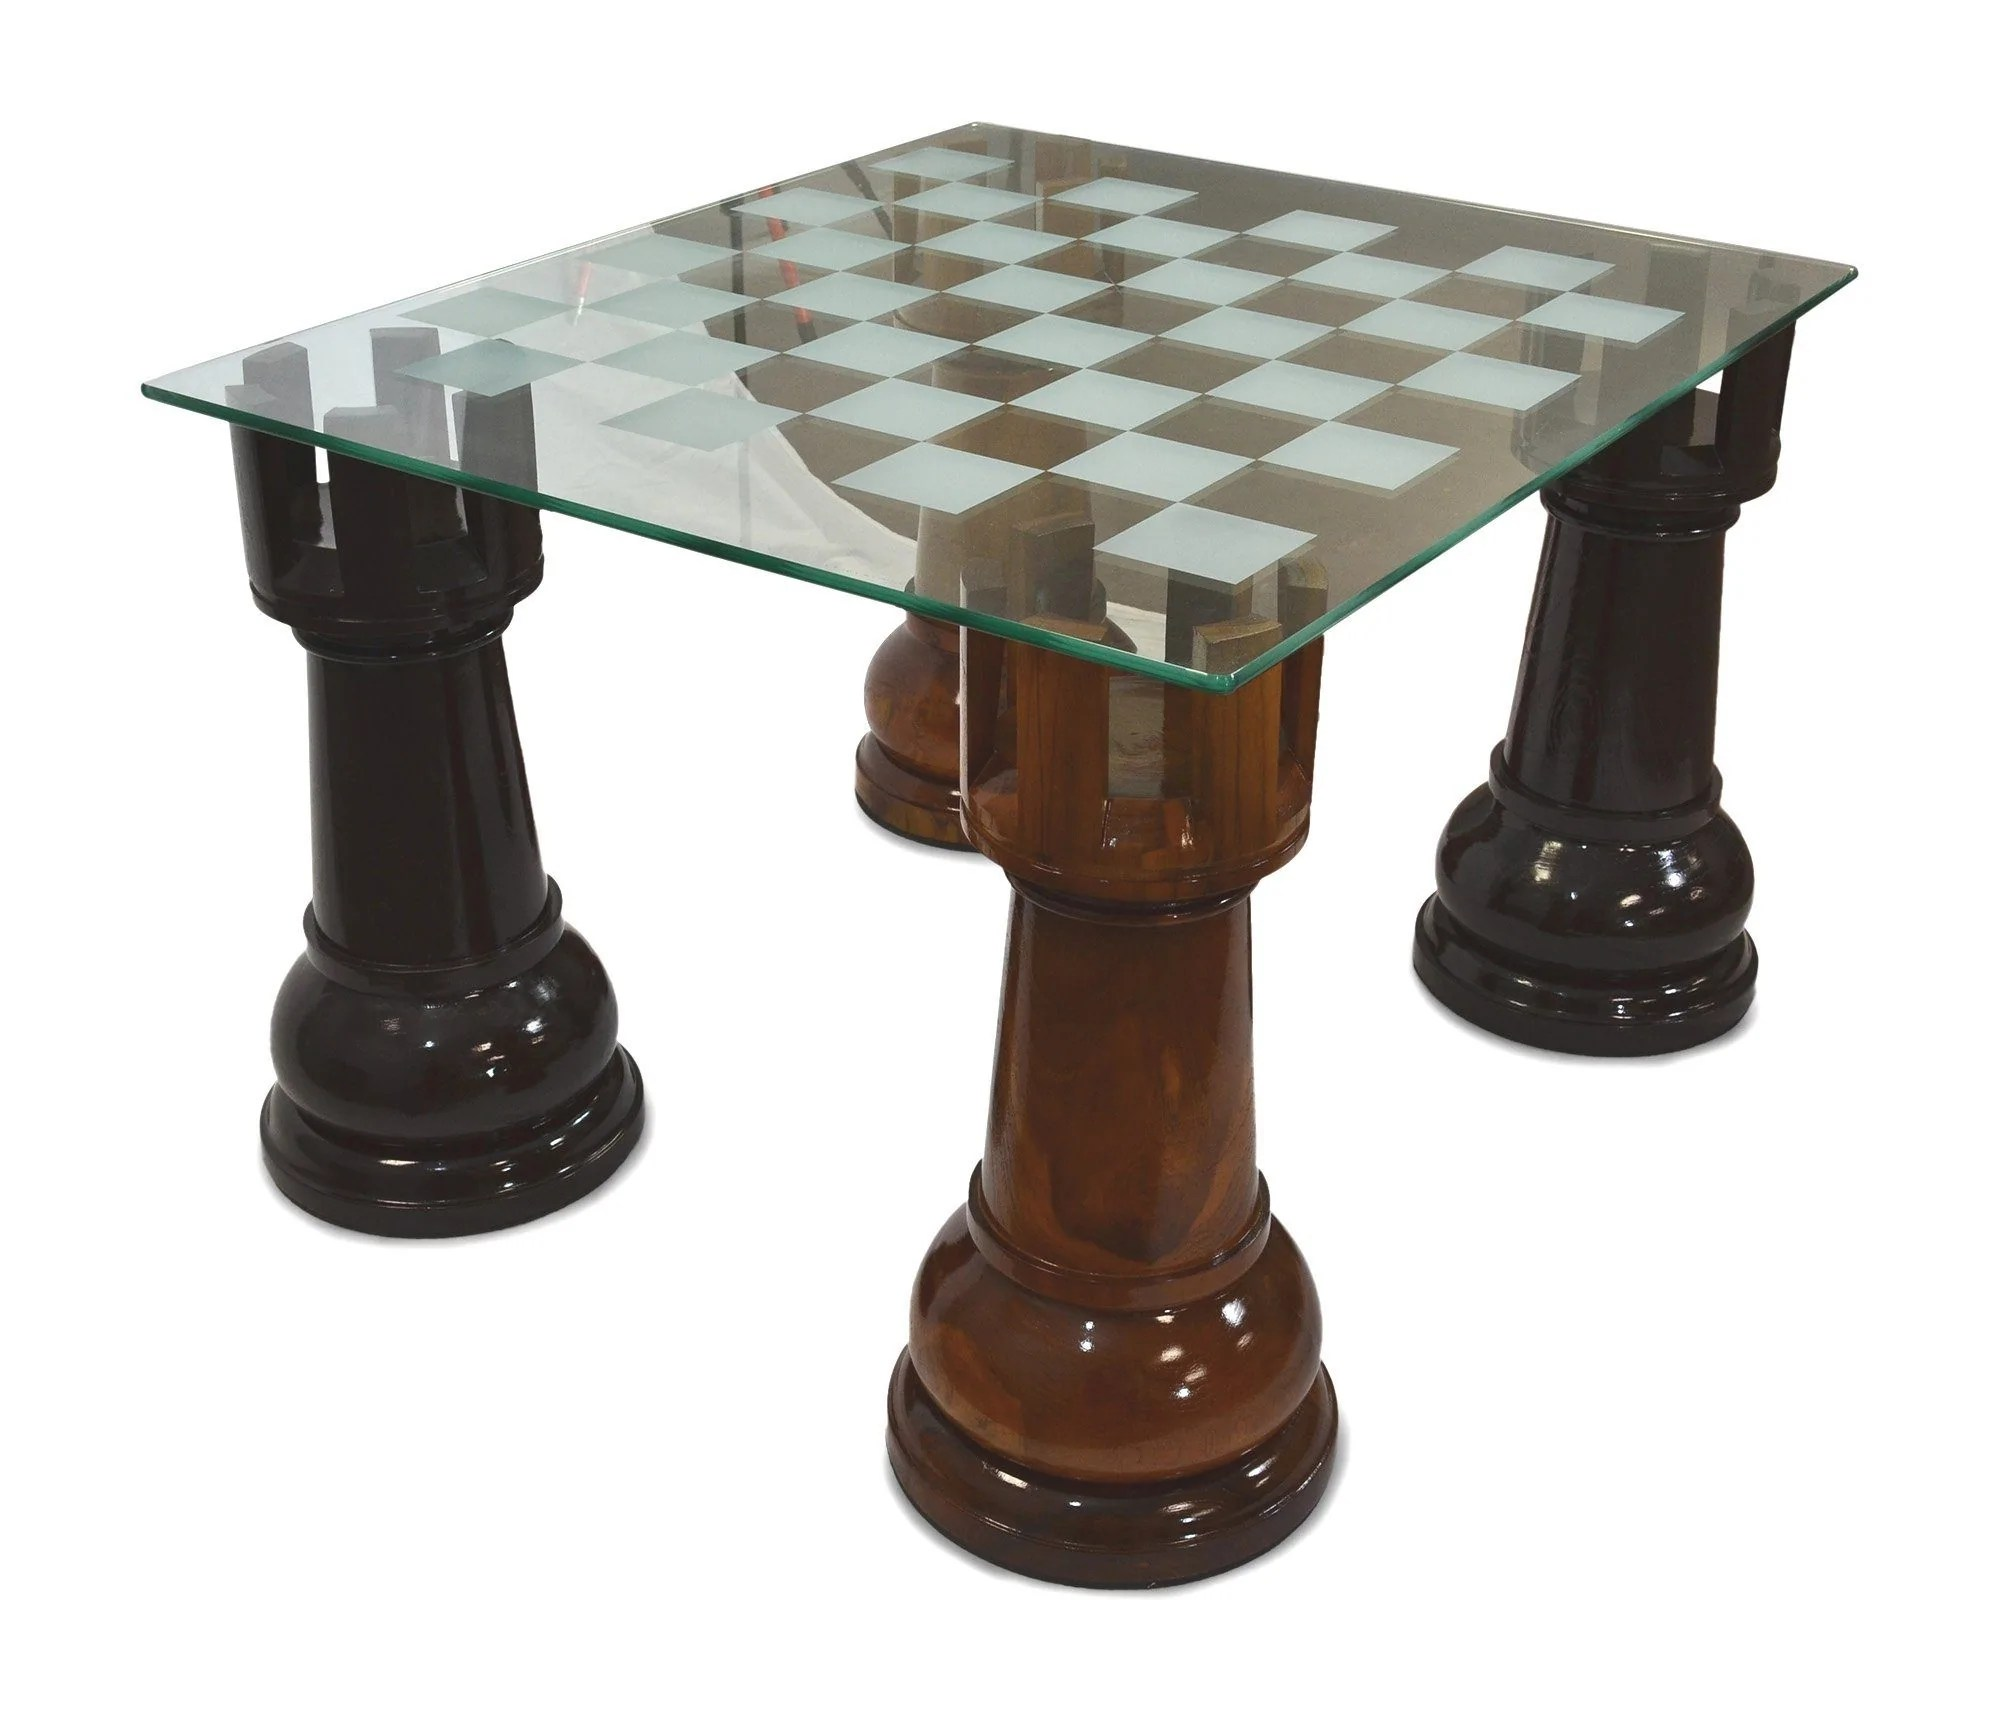 Chess Table Megachess 36 Inch Etched Glass Giant Chess Table Lawngames